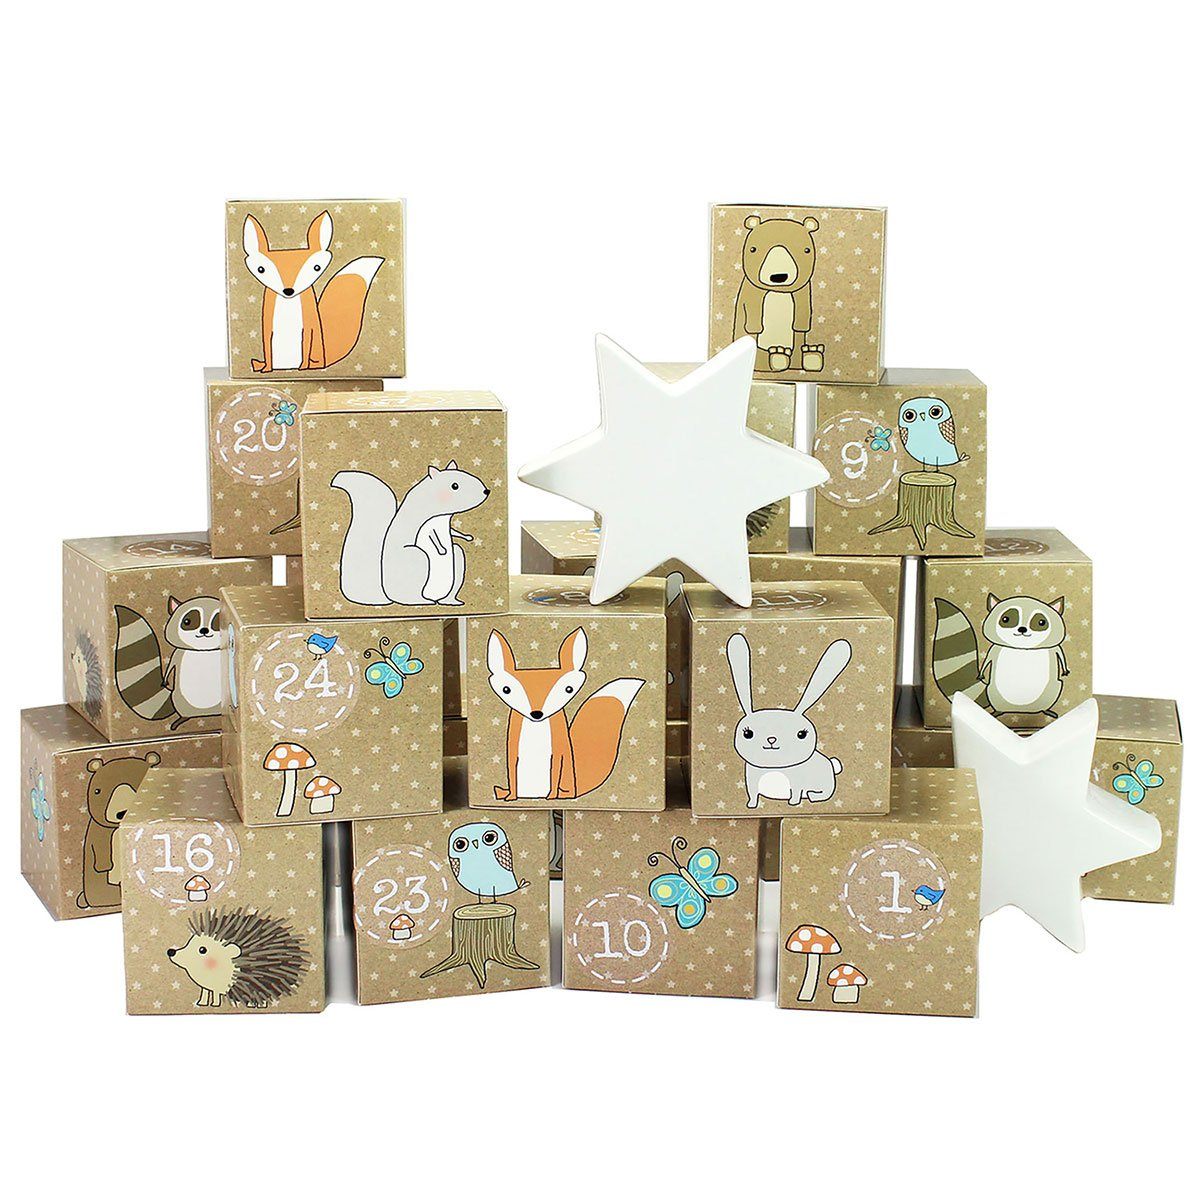 DIY Advent Calendar set - Woodland Animals - 24 printed Cardboard Boxes for making and filling PAPIERDRACHEN